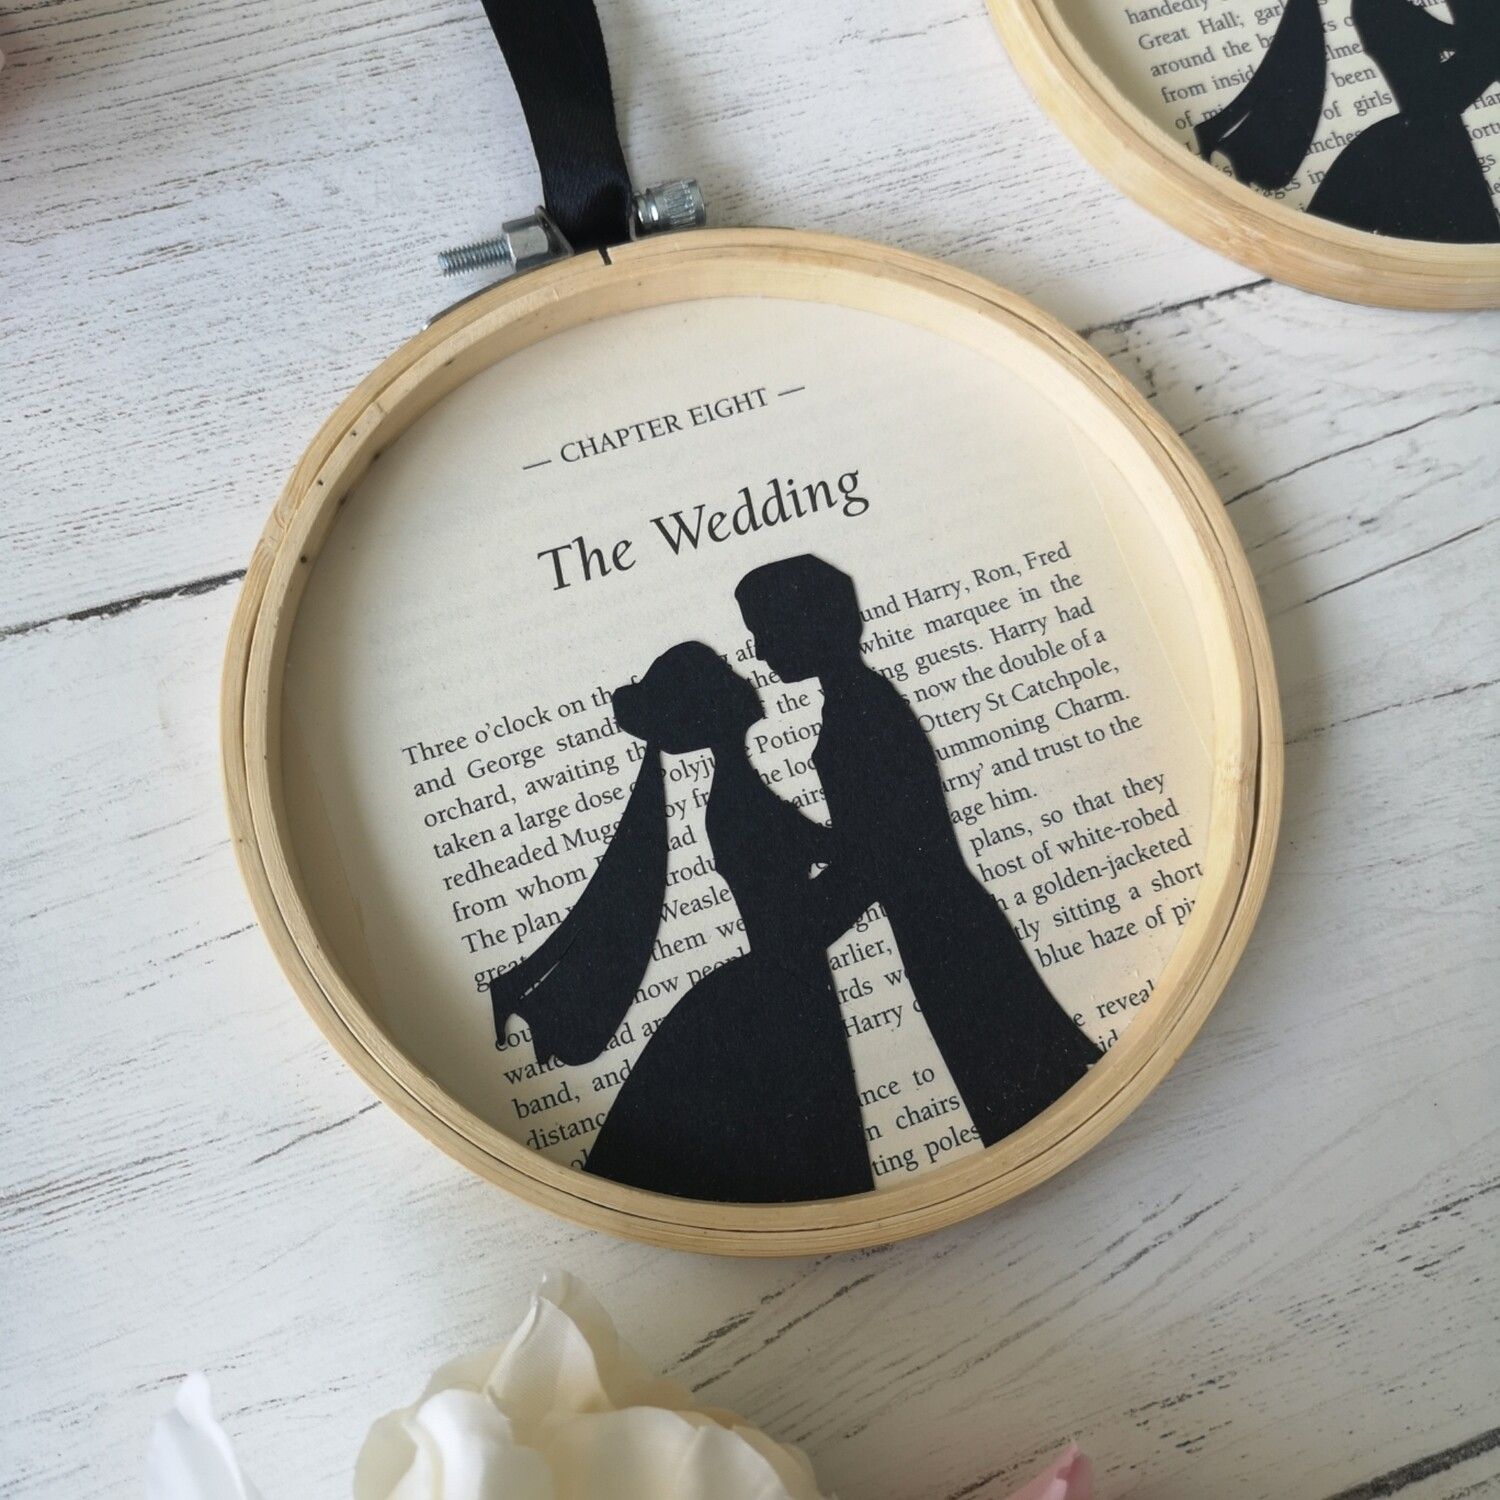 Harry Potter Wedding book art made from original book pages / Unbreakable Vow